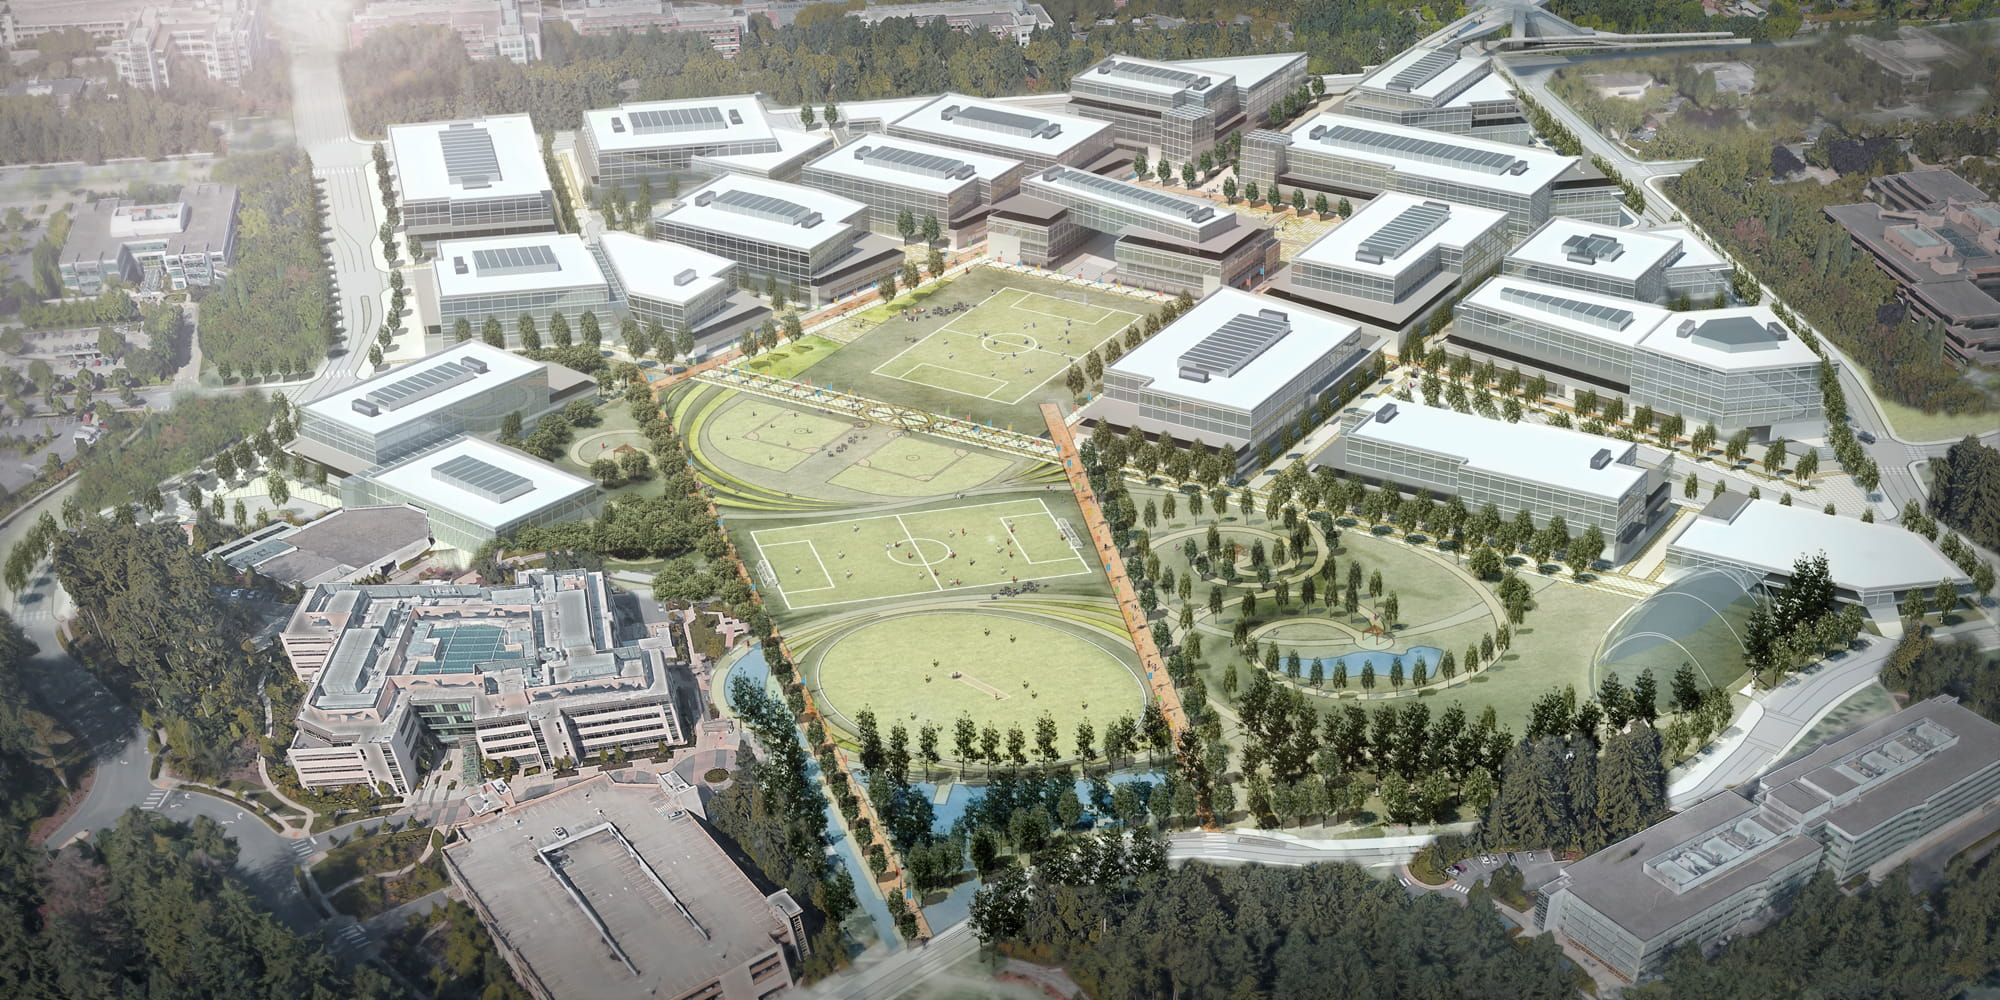 Aerial view of Microsoft campus